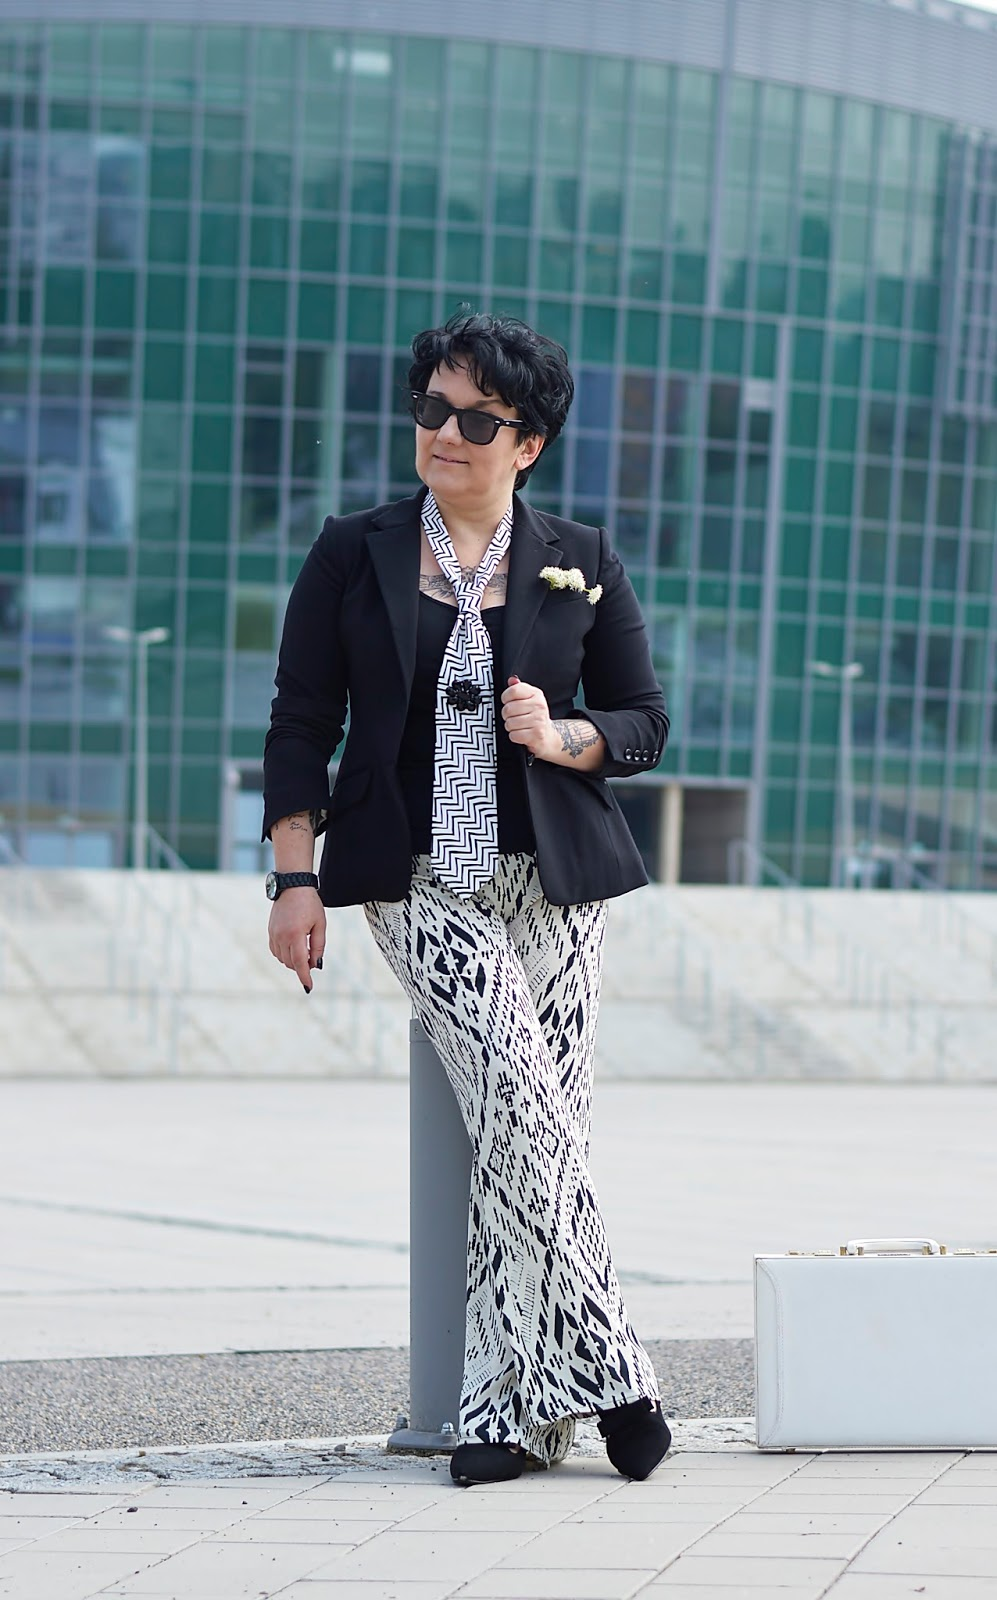 Black and white style, spring stylization, trendy pants, baggy pants